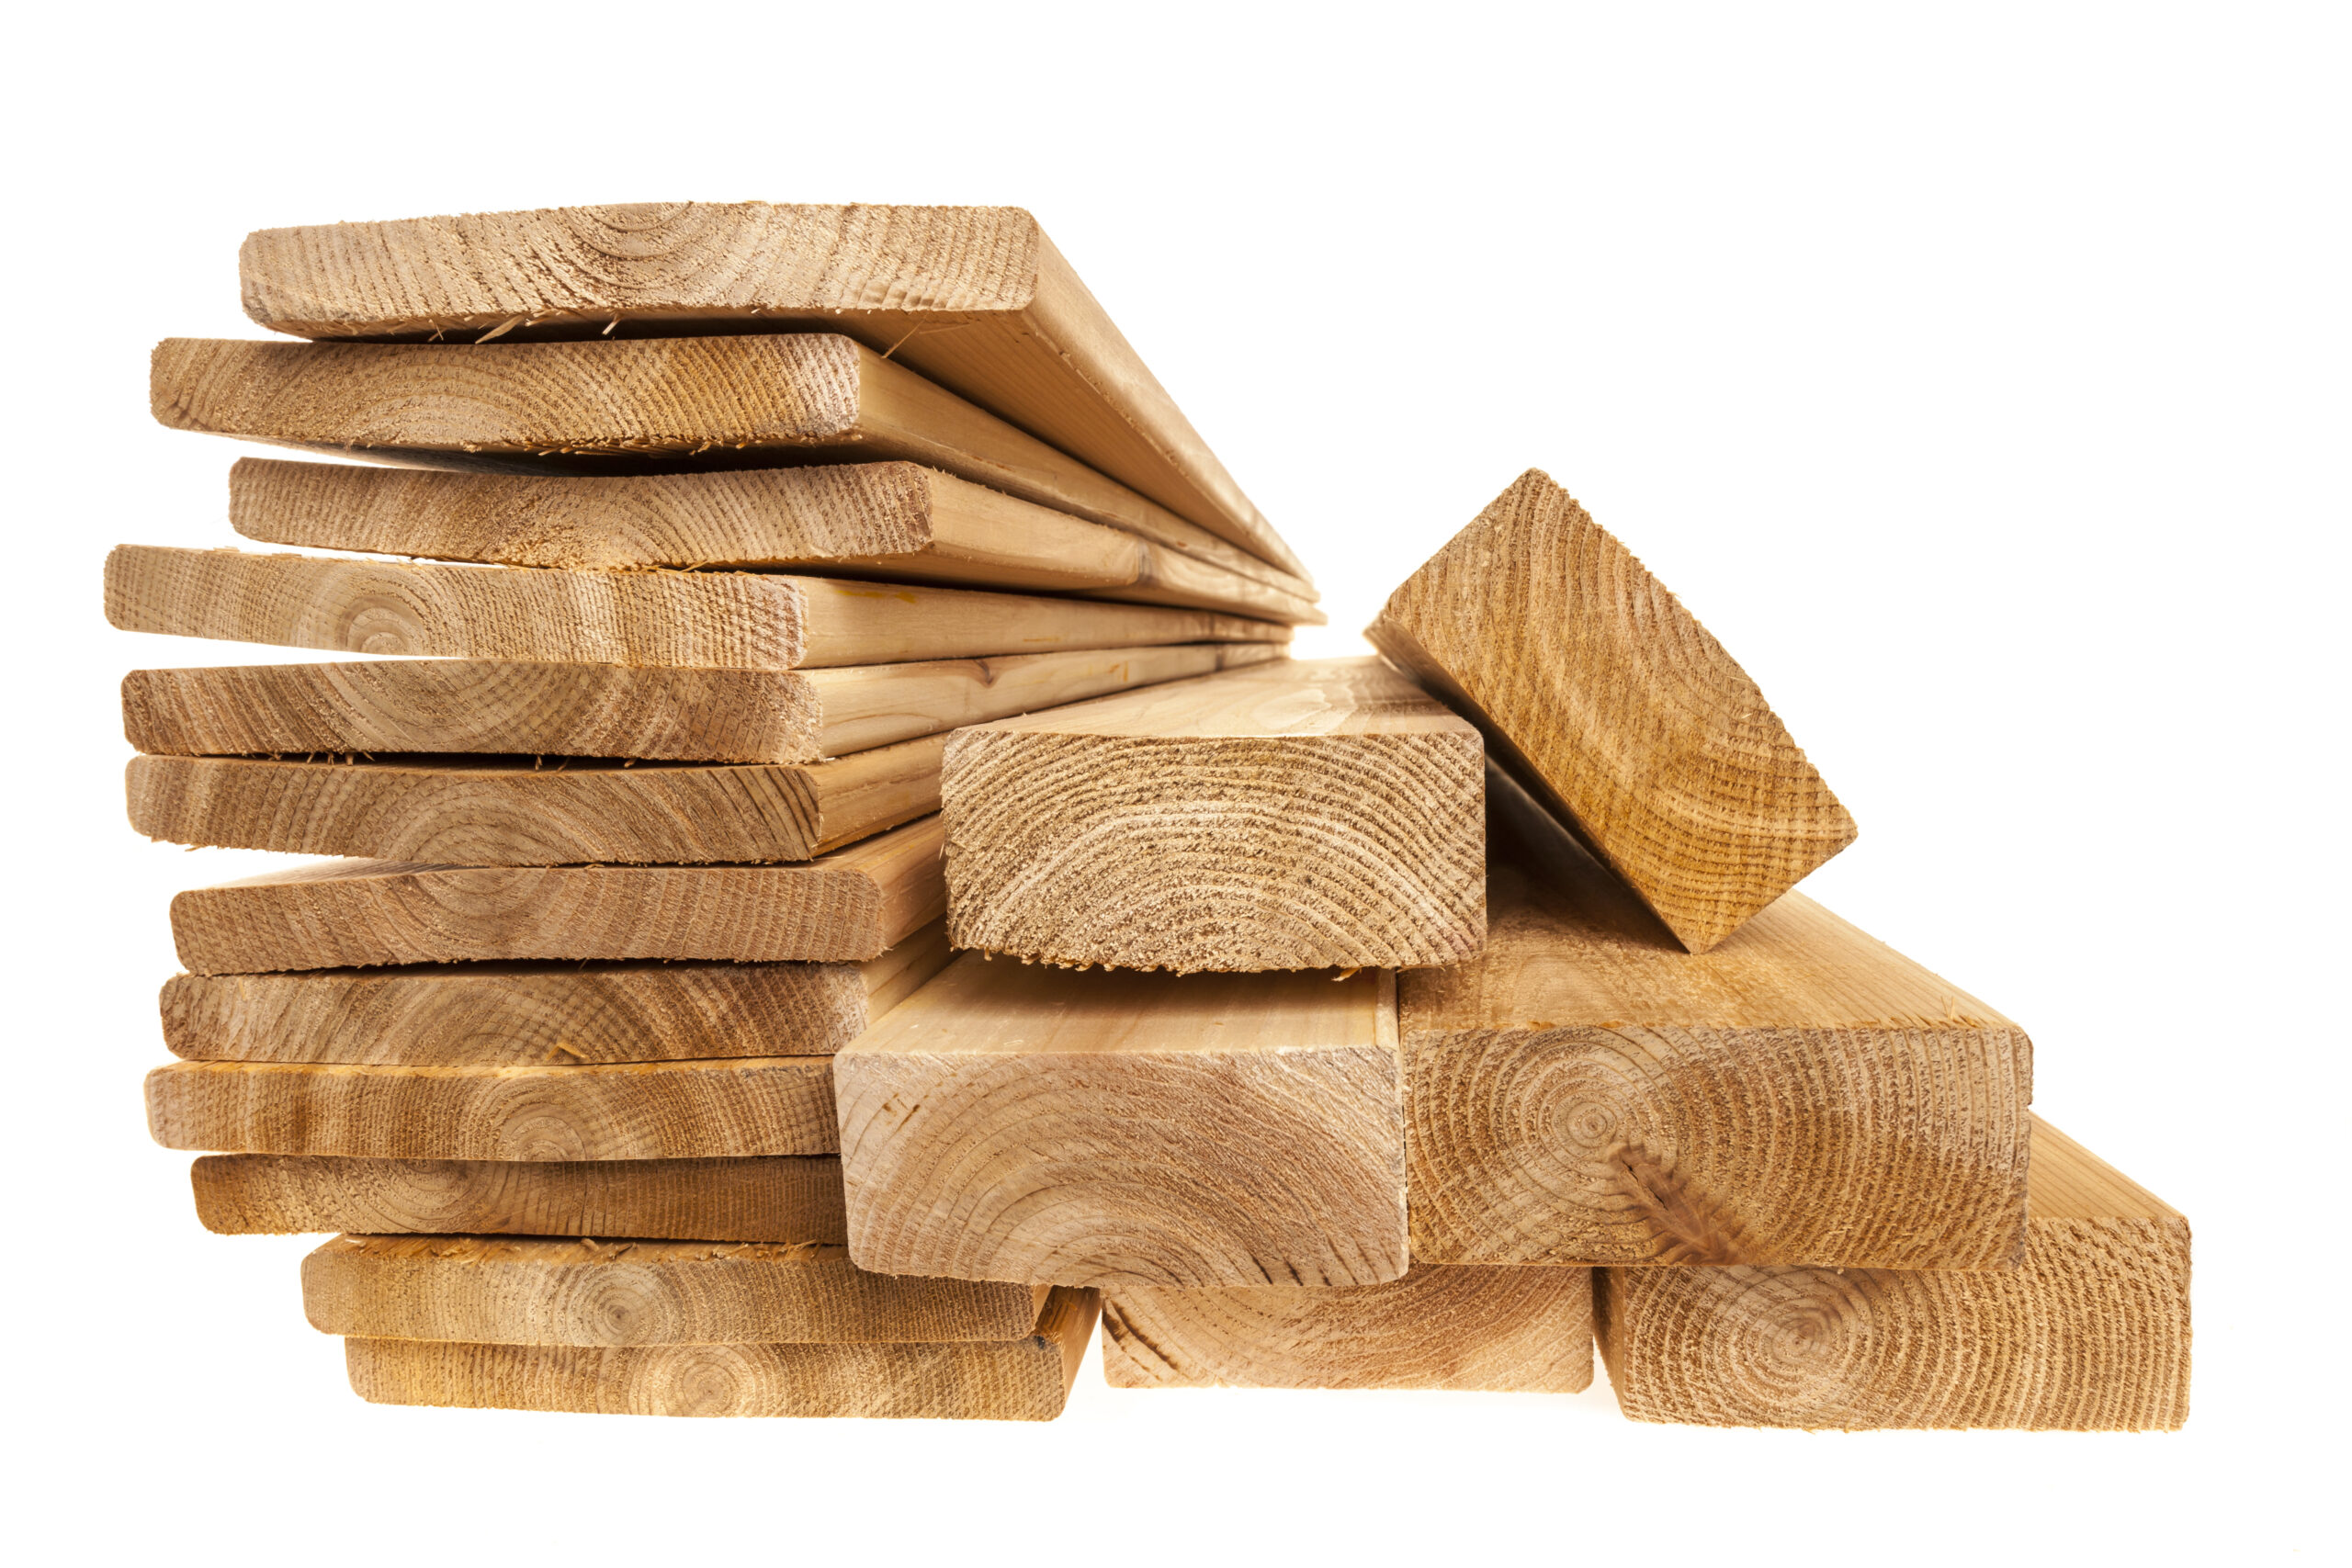 Soaring Lumber Prices Limit the Housing Sector's Potential